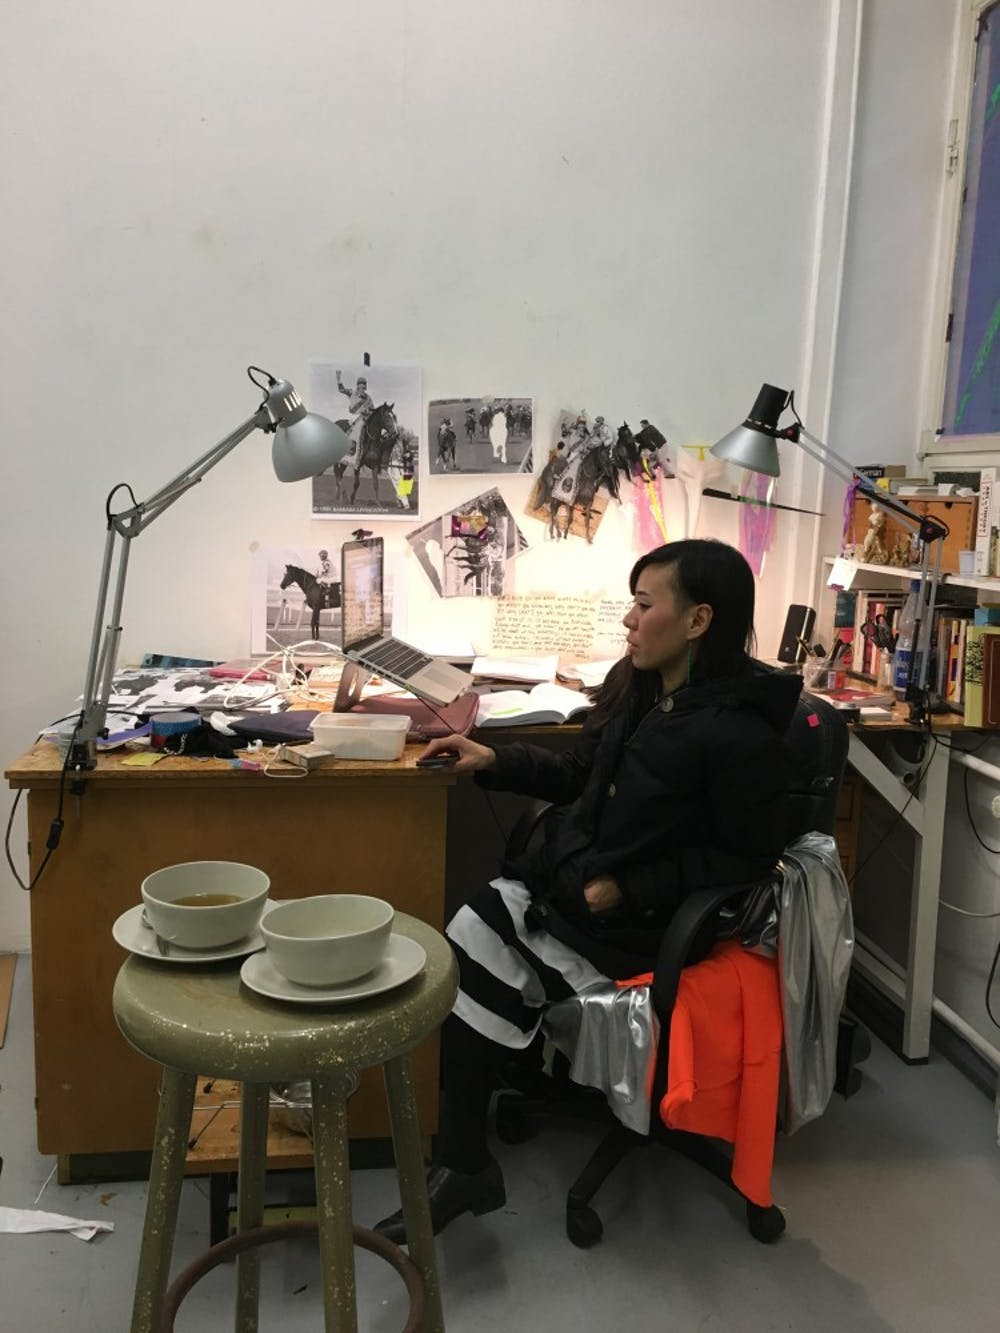 <p>Christa Joo Hyun D'Angelo works at her desk in her Kreuzberg studio. She is currently completing an exhibition focusing on the inhumanity of horse racing, another example of politically-charged work given a platform in Berlin's art scene.</p>